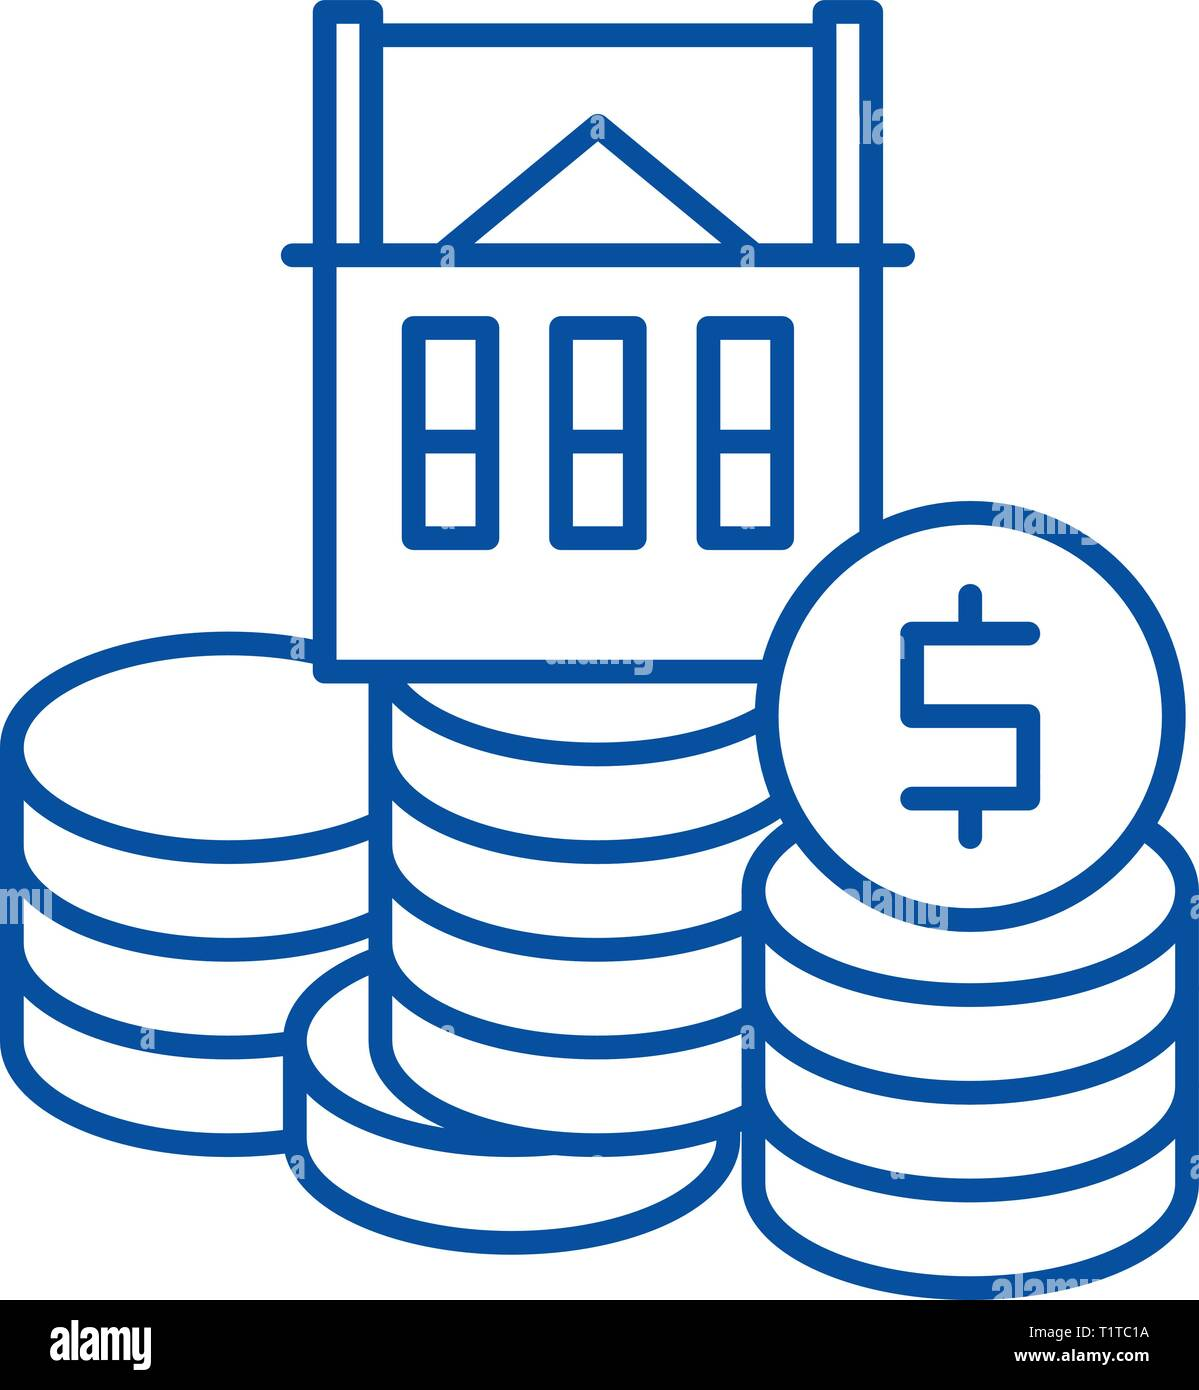 Selling a house line icon concept. Selling a house flat  vector symbol, sign, outline illustration. - Stock Vector